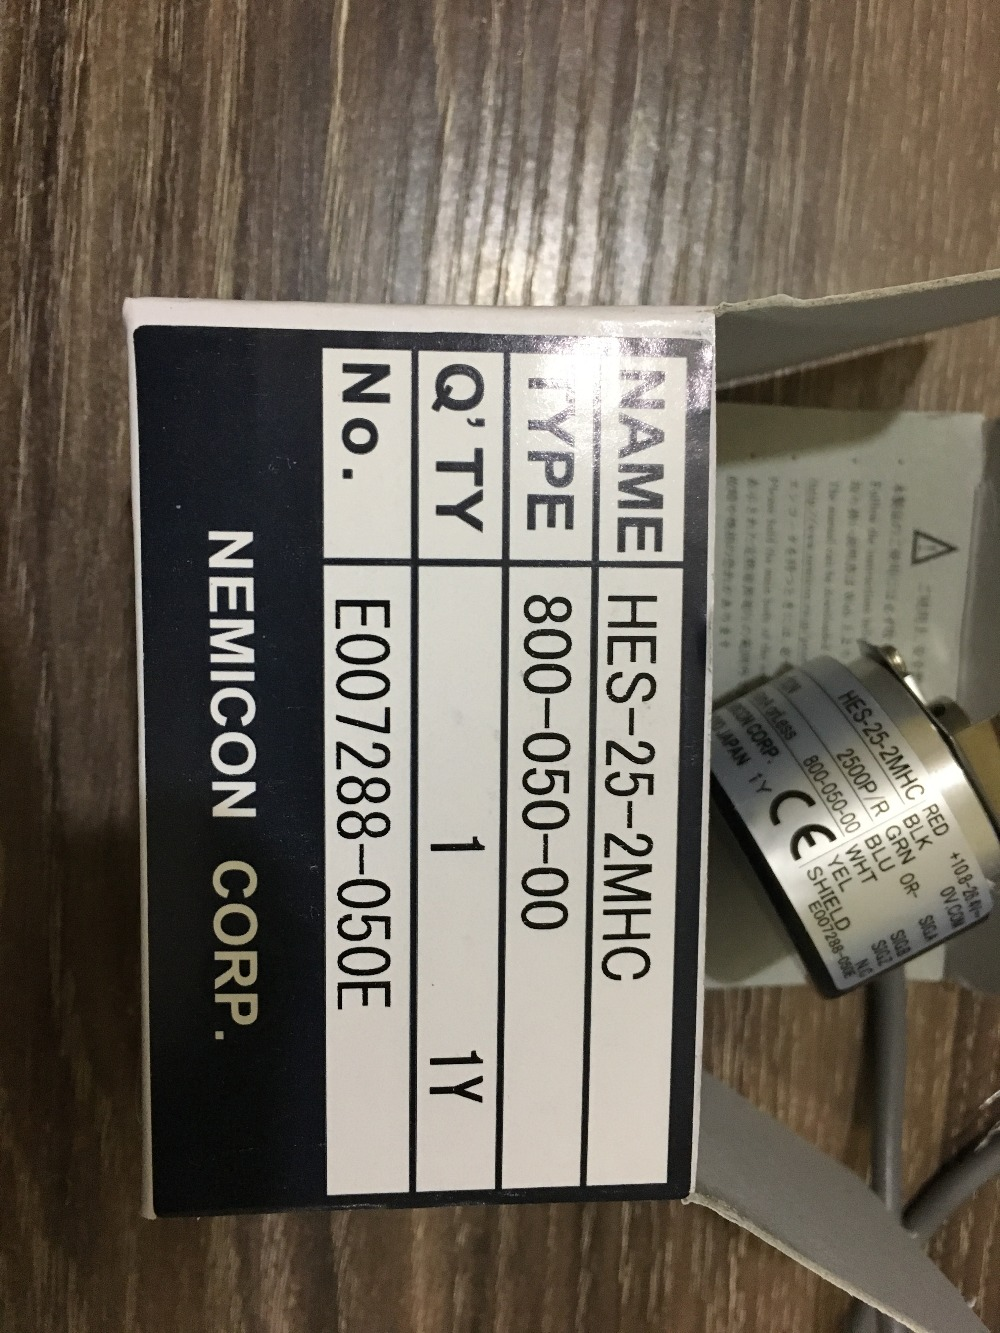 Within  control of NE MI CON * Cheap * HES-25-2MHC 2500 encoder pulse performance and stabilityWithin  control of NE MI CON * Cheap * HES-25-2MHC 2500 encoder pulse performance and stability